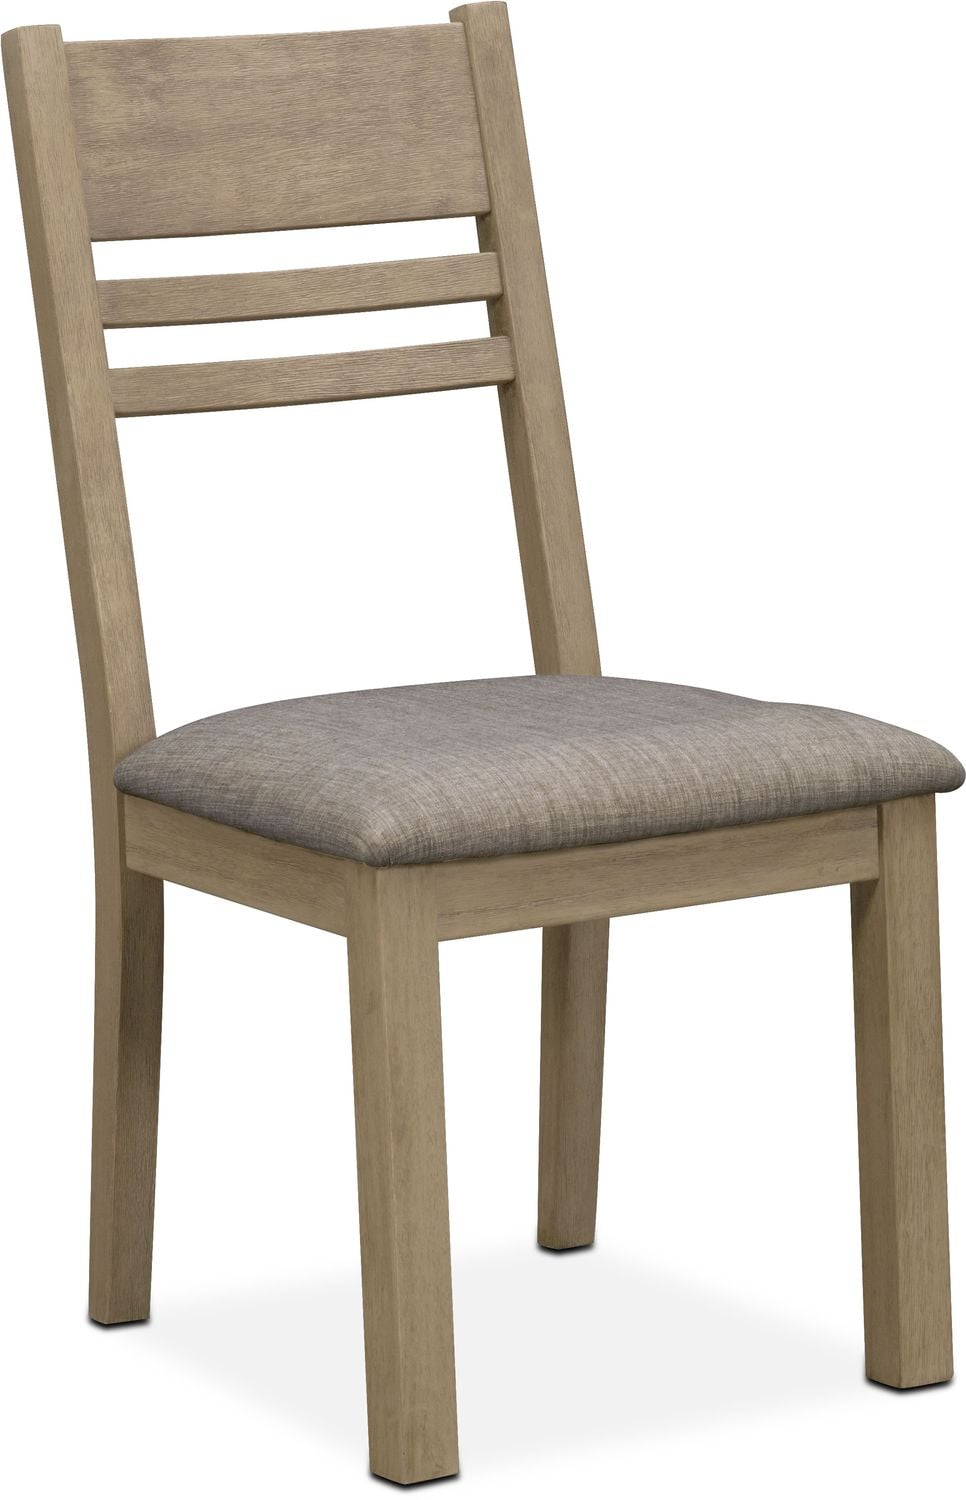 Dining Room Furniture - Tribeca Side Chair - Gray